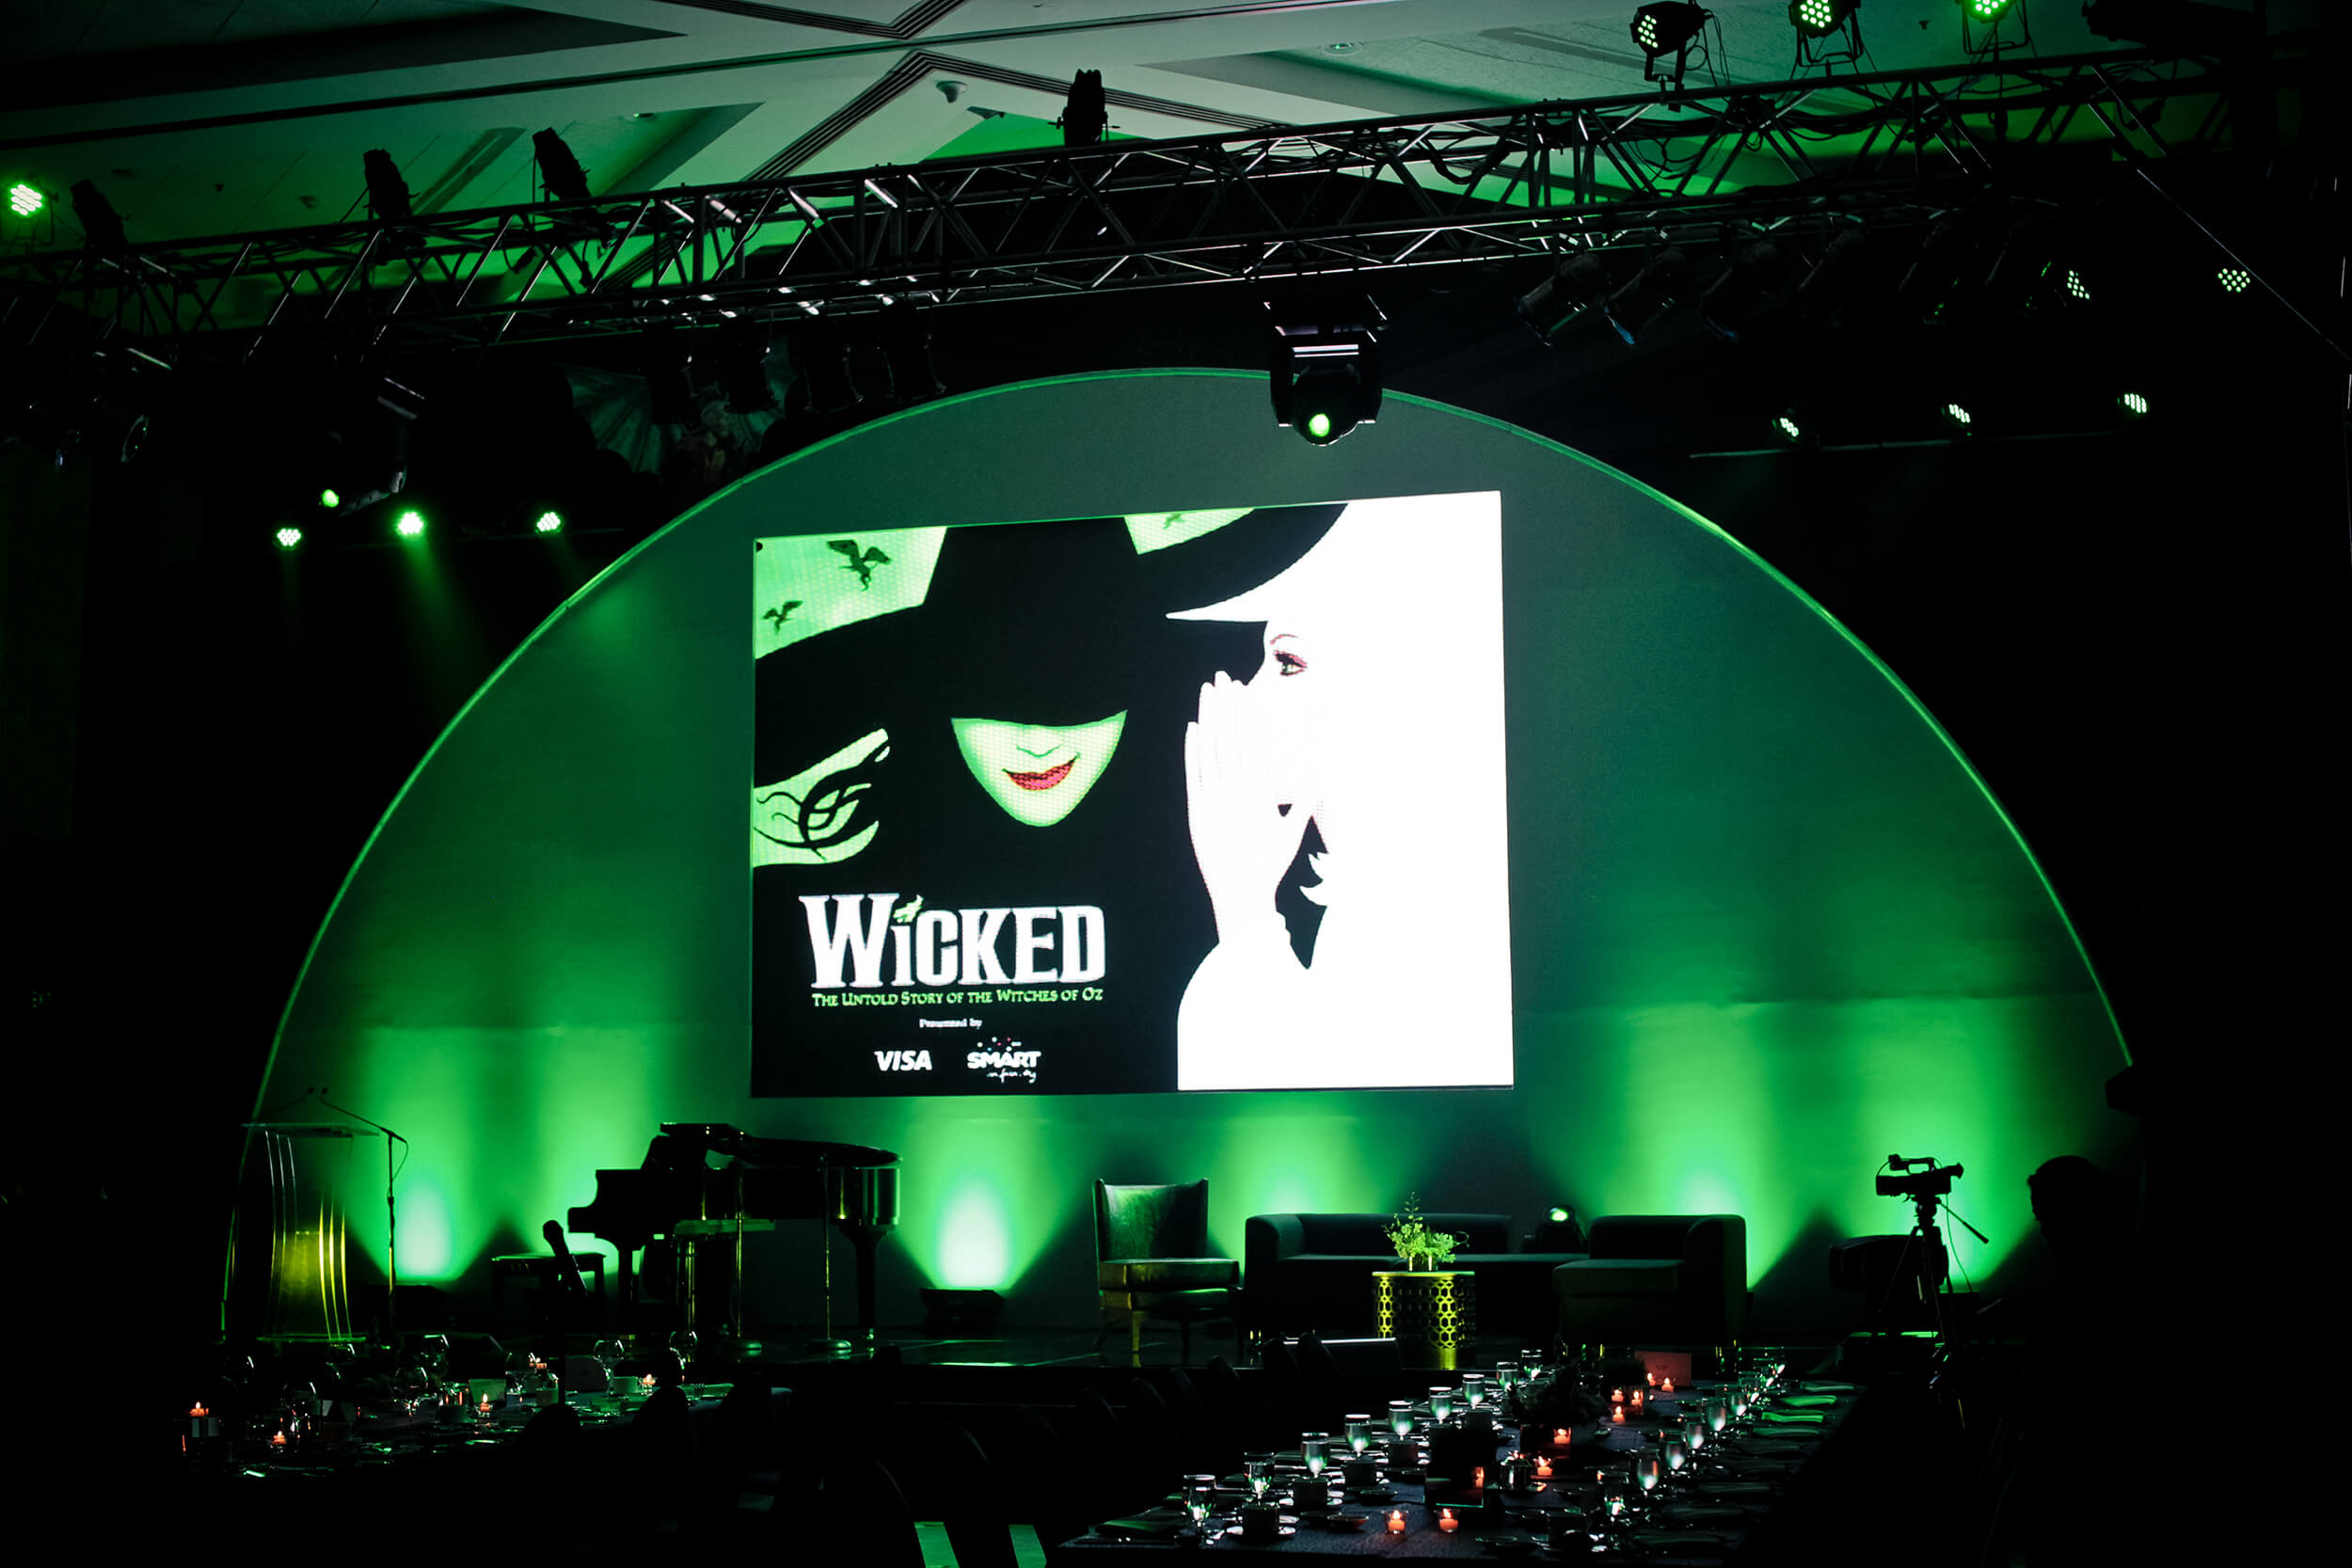 Wicked_Gallery_2